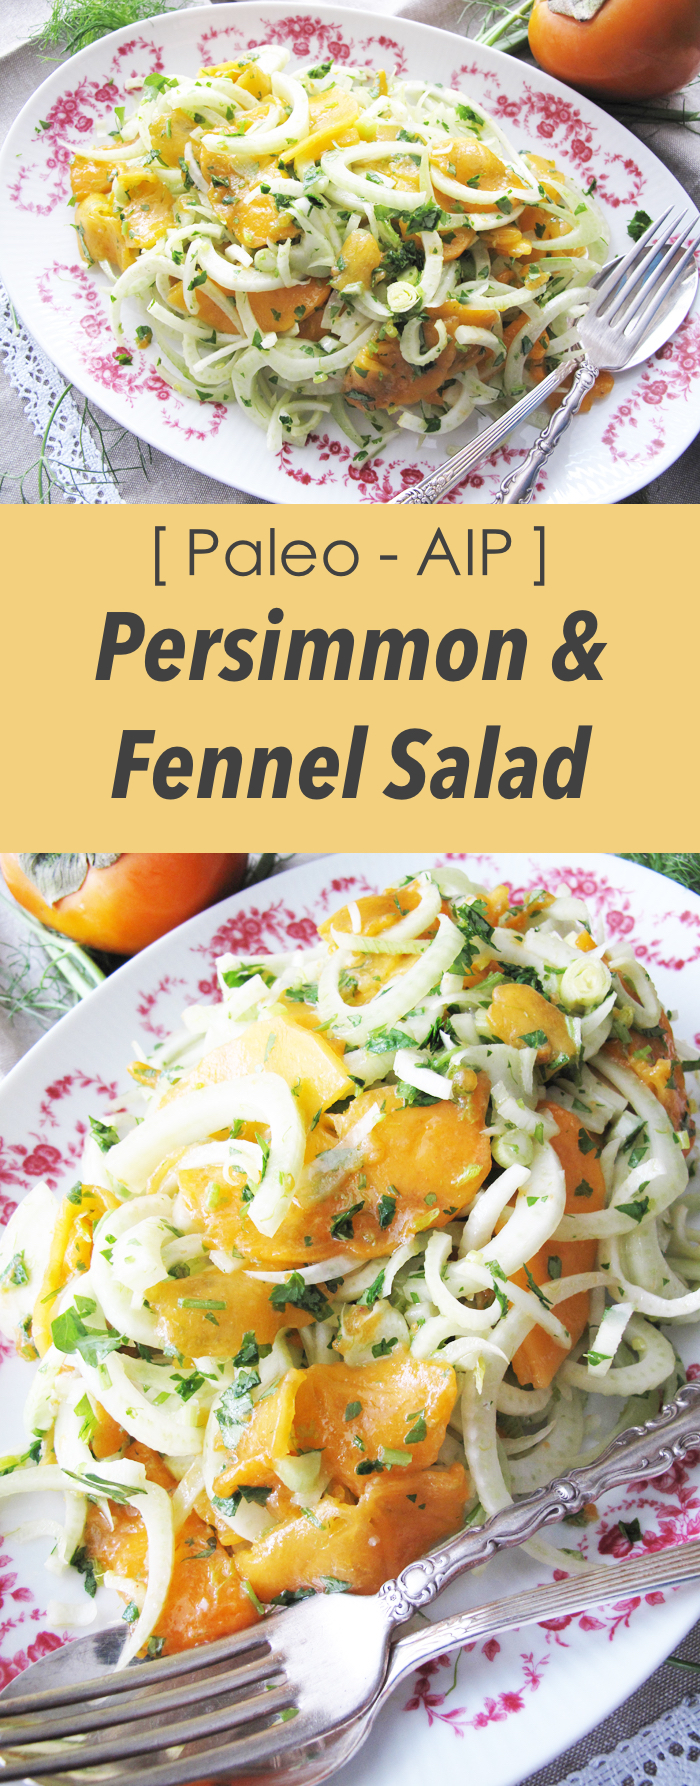 AIP / Paleo Persimmon and Fennel Salad - Fall Recipe for the Holidays